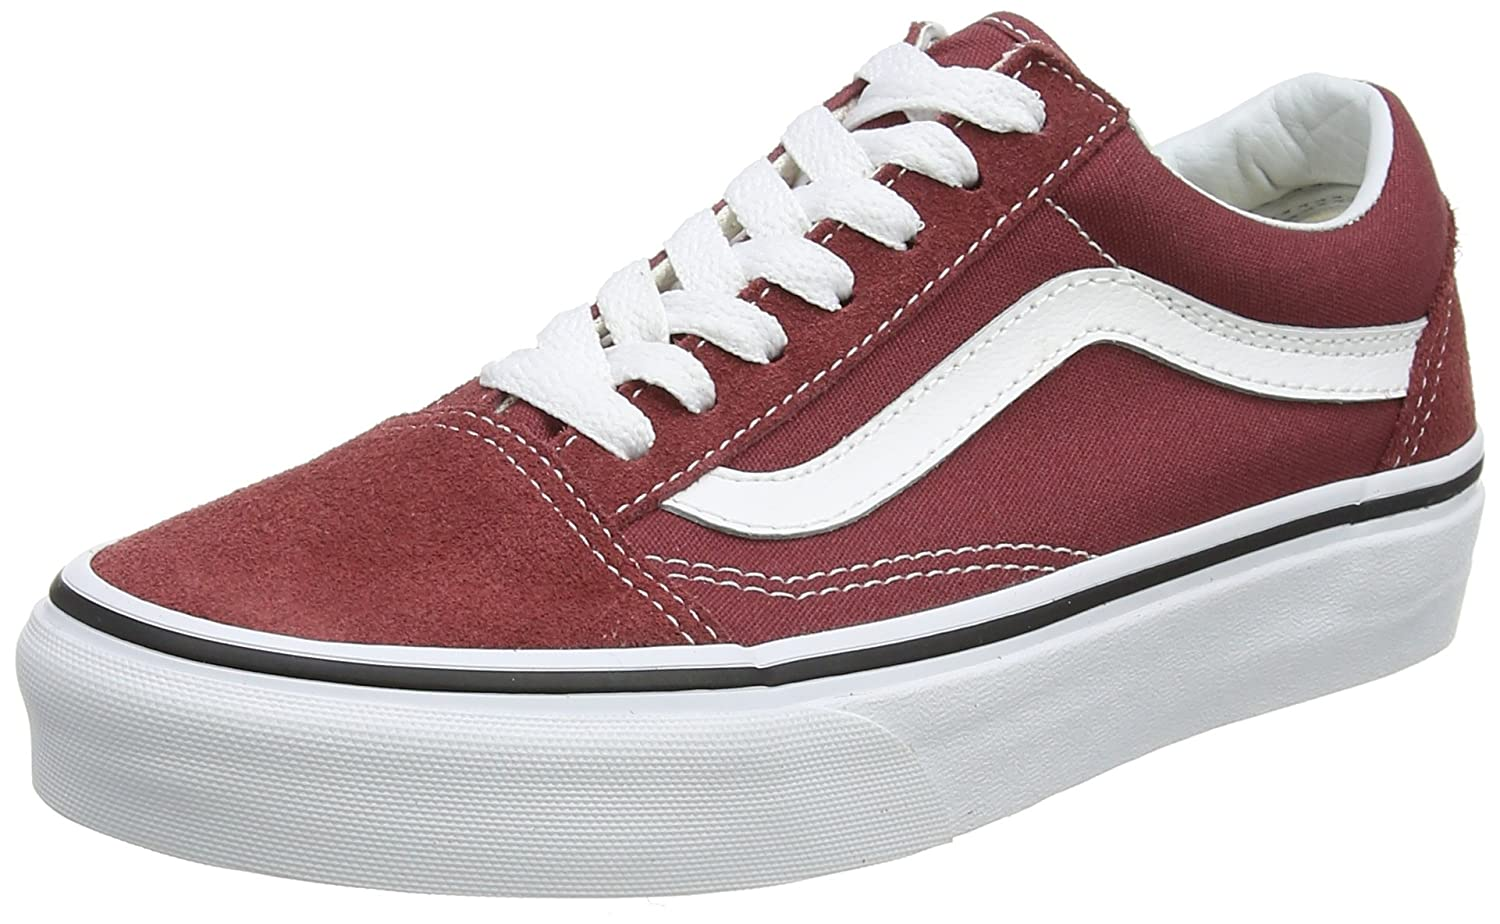 Vans Old Skool Unisex Adults' Low-Top Trainers B074HCFGFM 9 M US Women / 7.5 M US Men|Apple Butter/True White